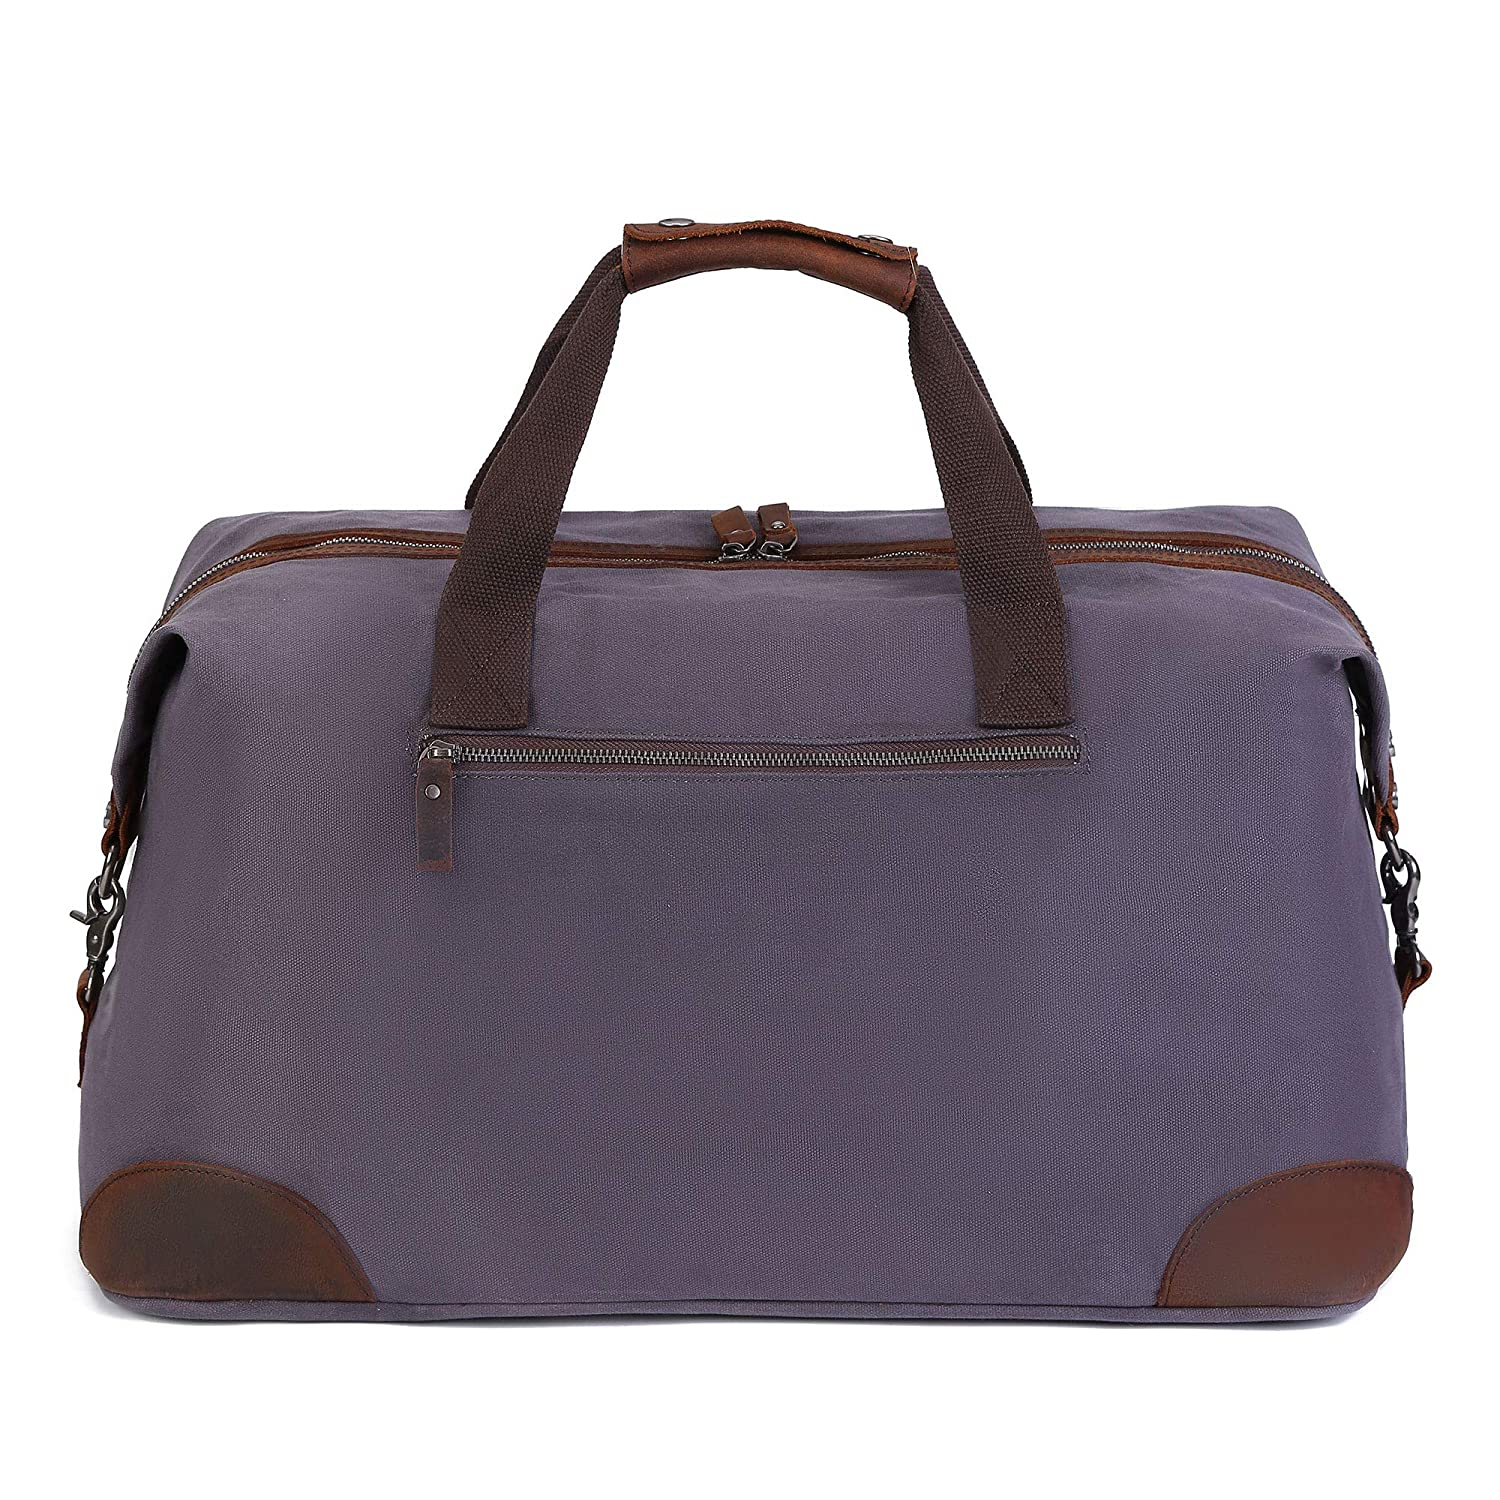 AmHoo 45l Duffel Bag Oversized Water-Resistant Canvas Waxed Carry On Travel Genuine Leather Weekend Bag for Men